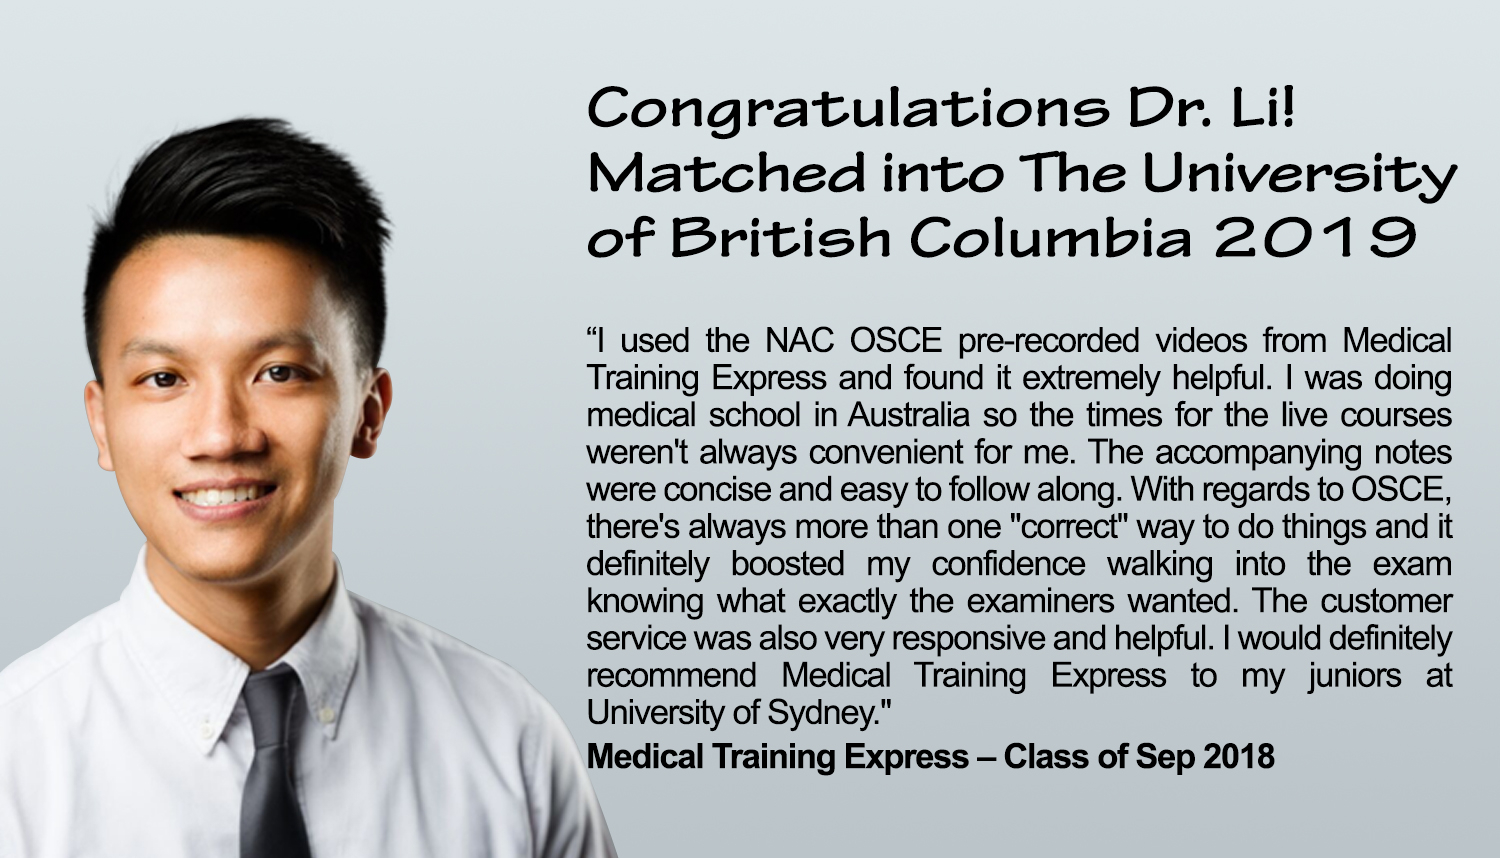 Medical Training Express